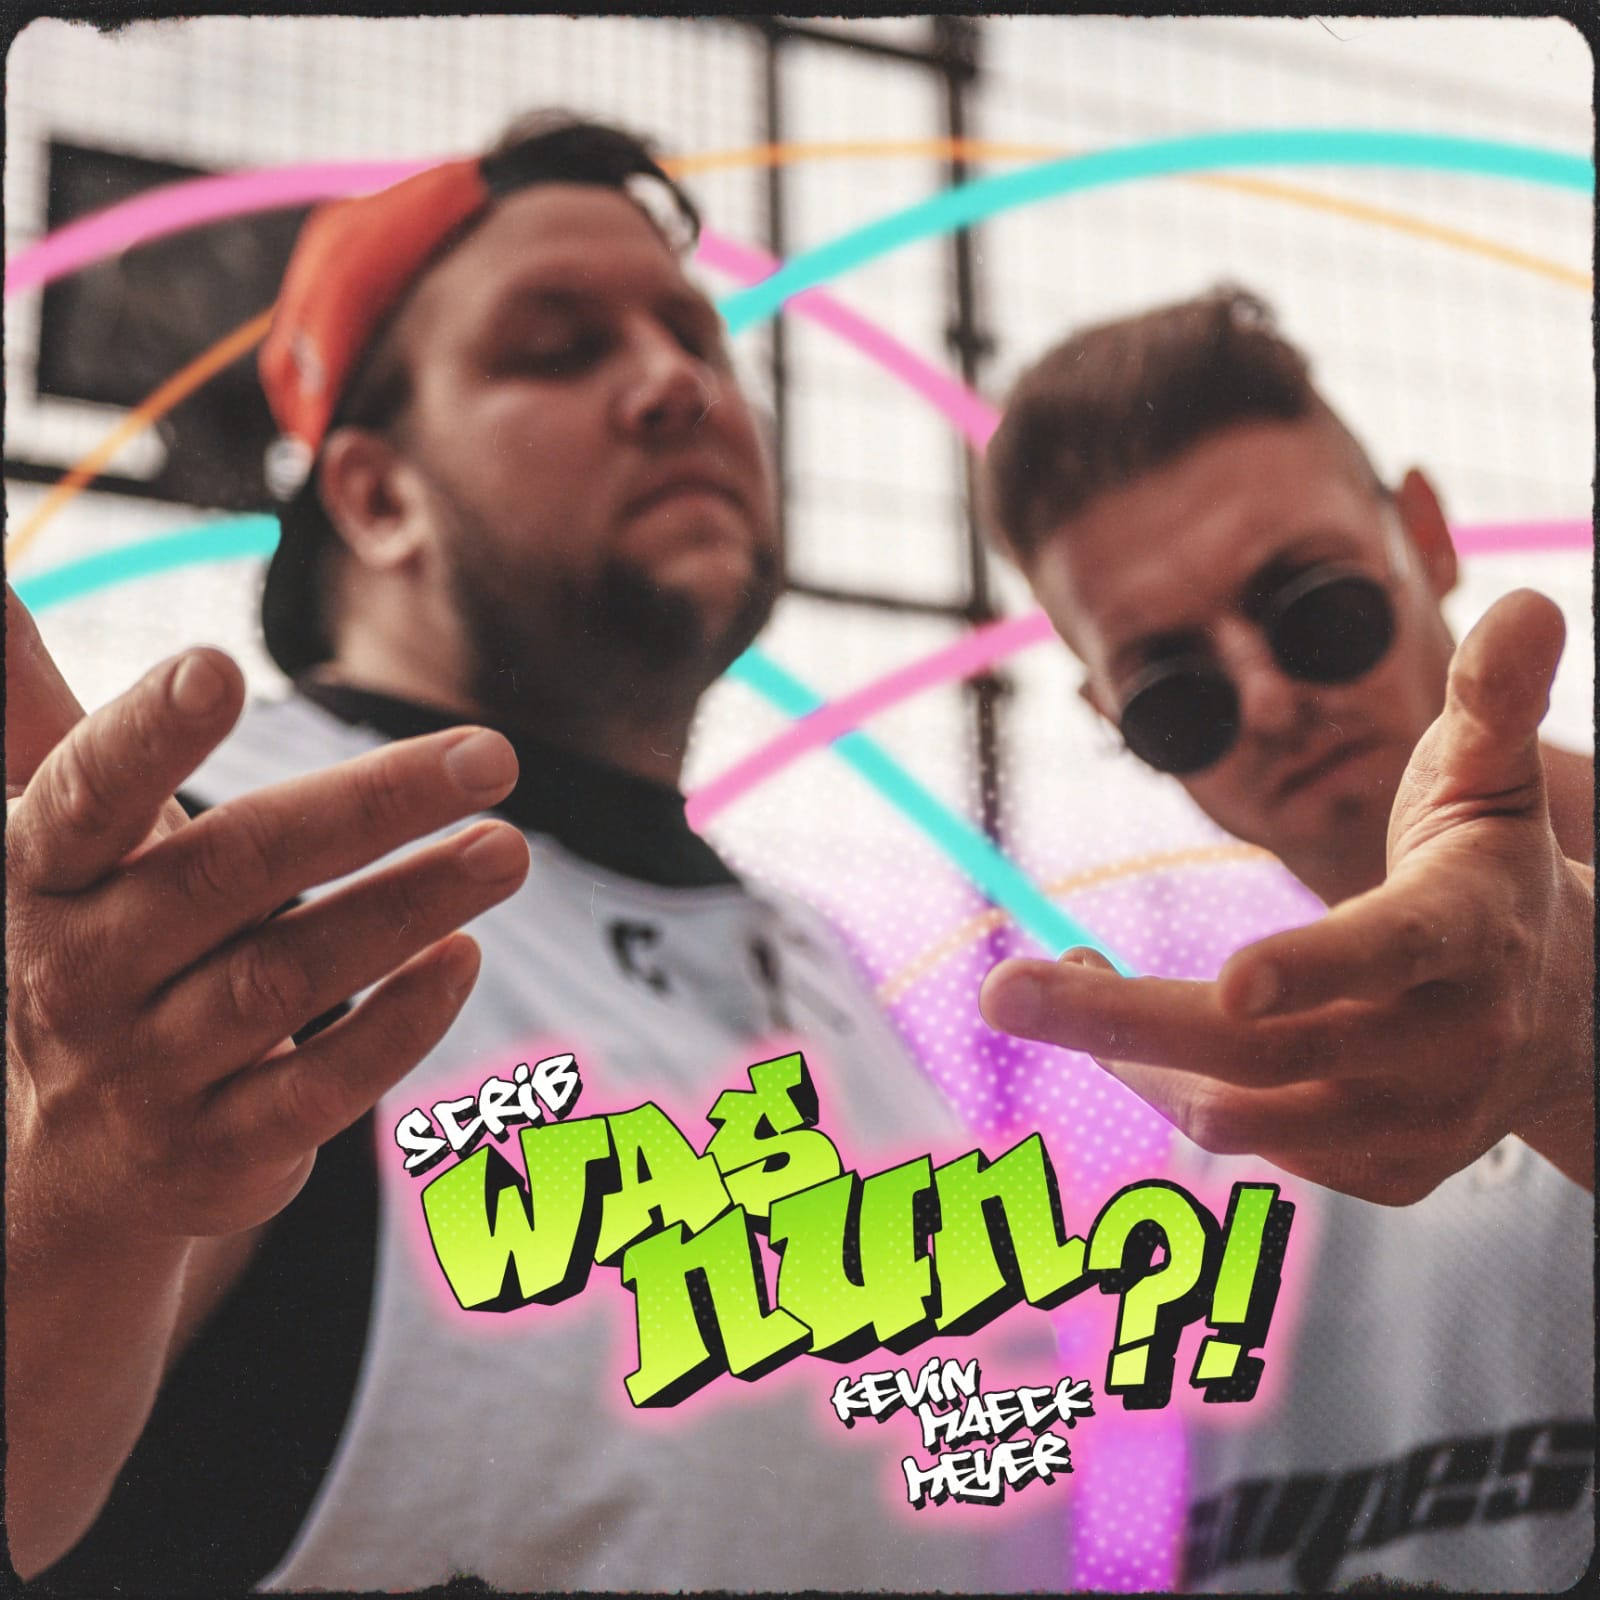 Upcoming: Kevin Maeck Meyer feat. Scrib - WAS NUN?!